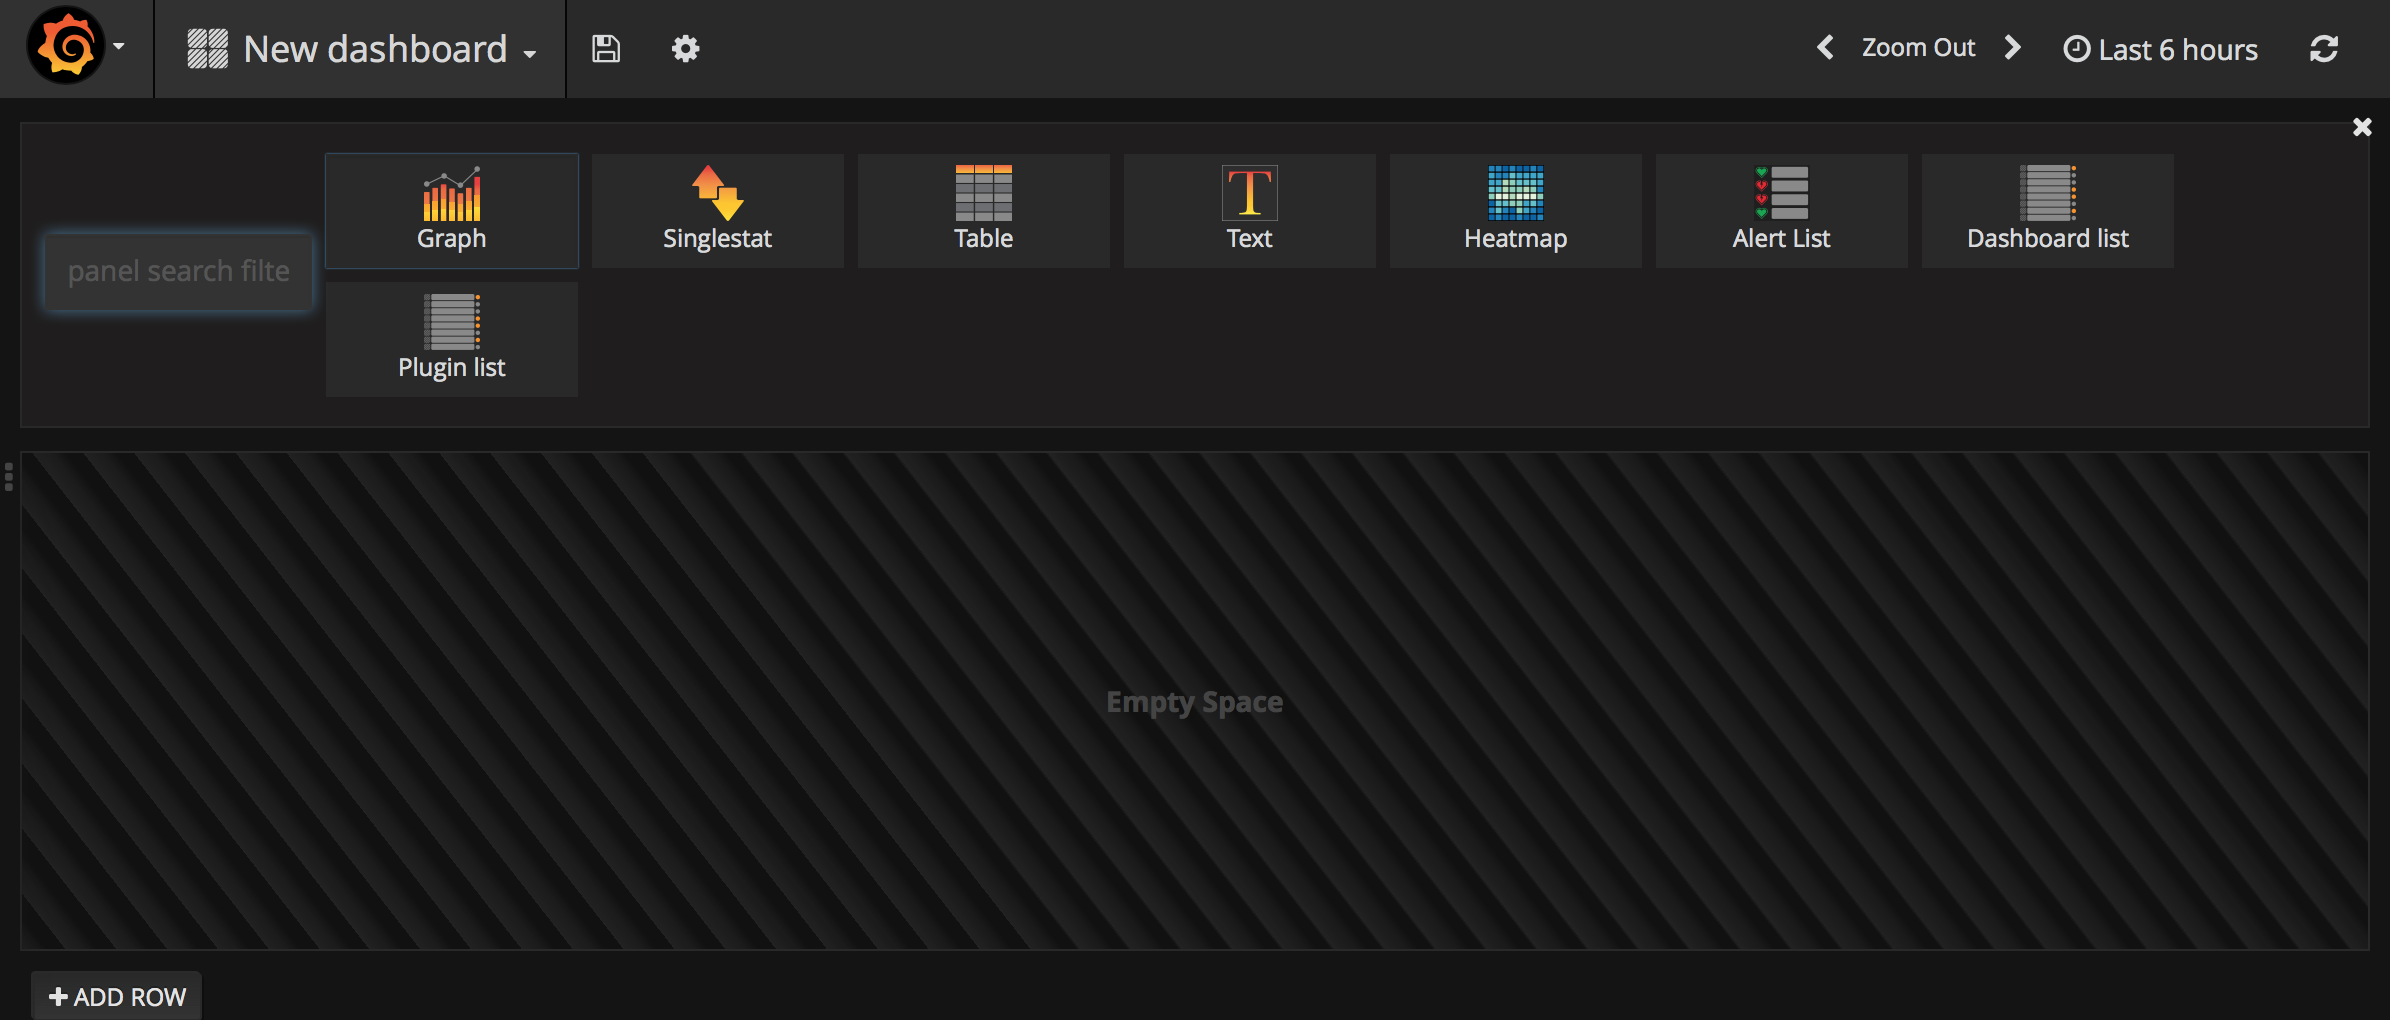 new_dashboard